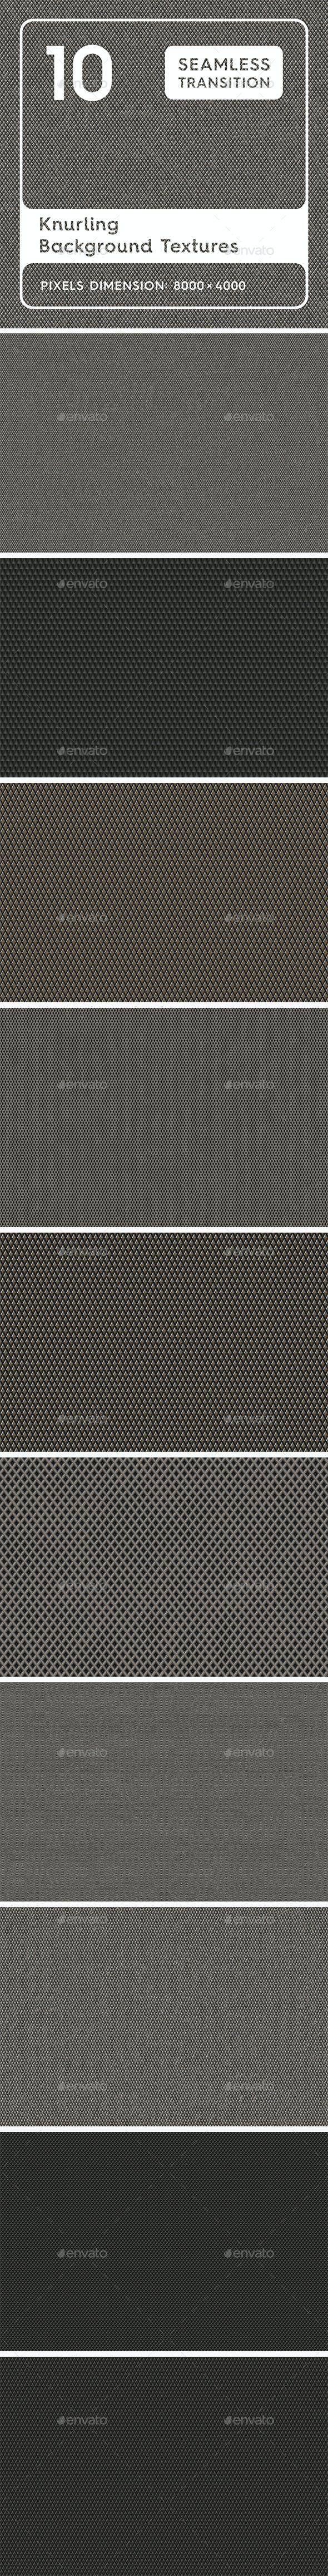 10 Knurling Background Textures - 3DOcean Item for Sale